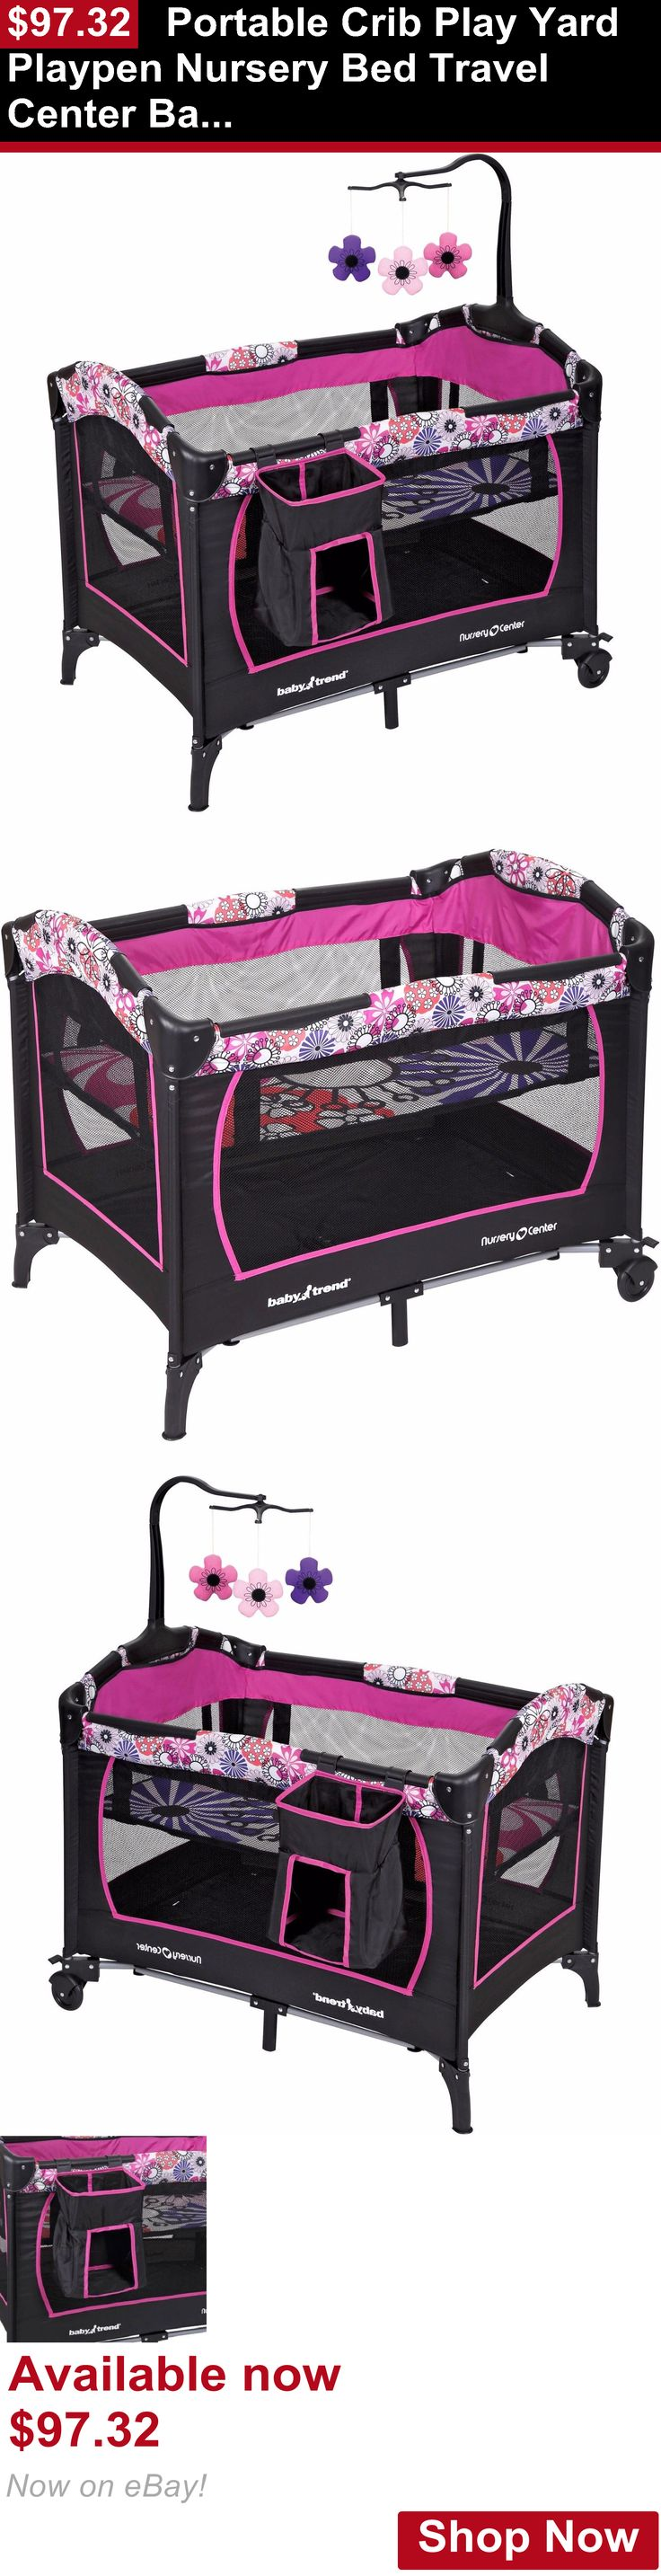 Baby Play pens and play yards: Portable Crib Play Yard Playpen Nursery Bed Travel Center Baby Toddler Safety BUY IT NOW ONLY: $97.32